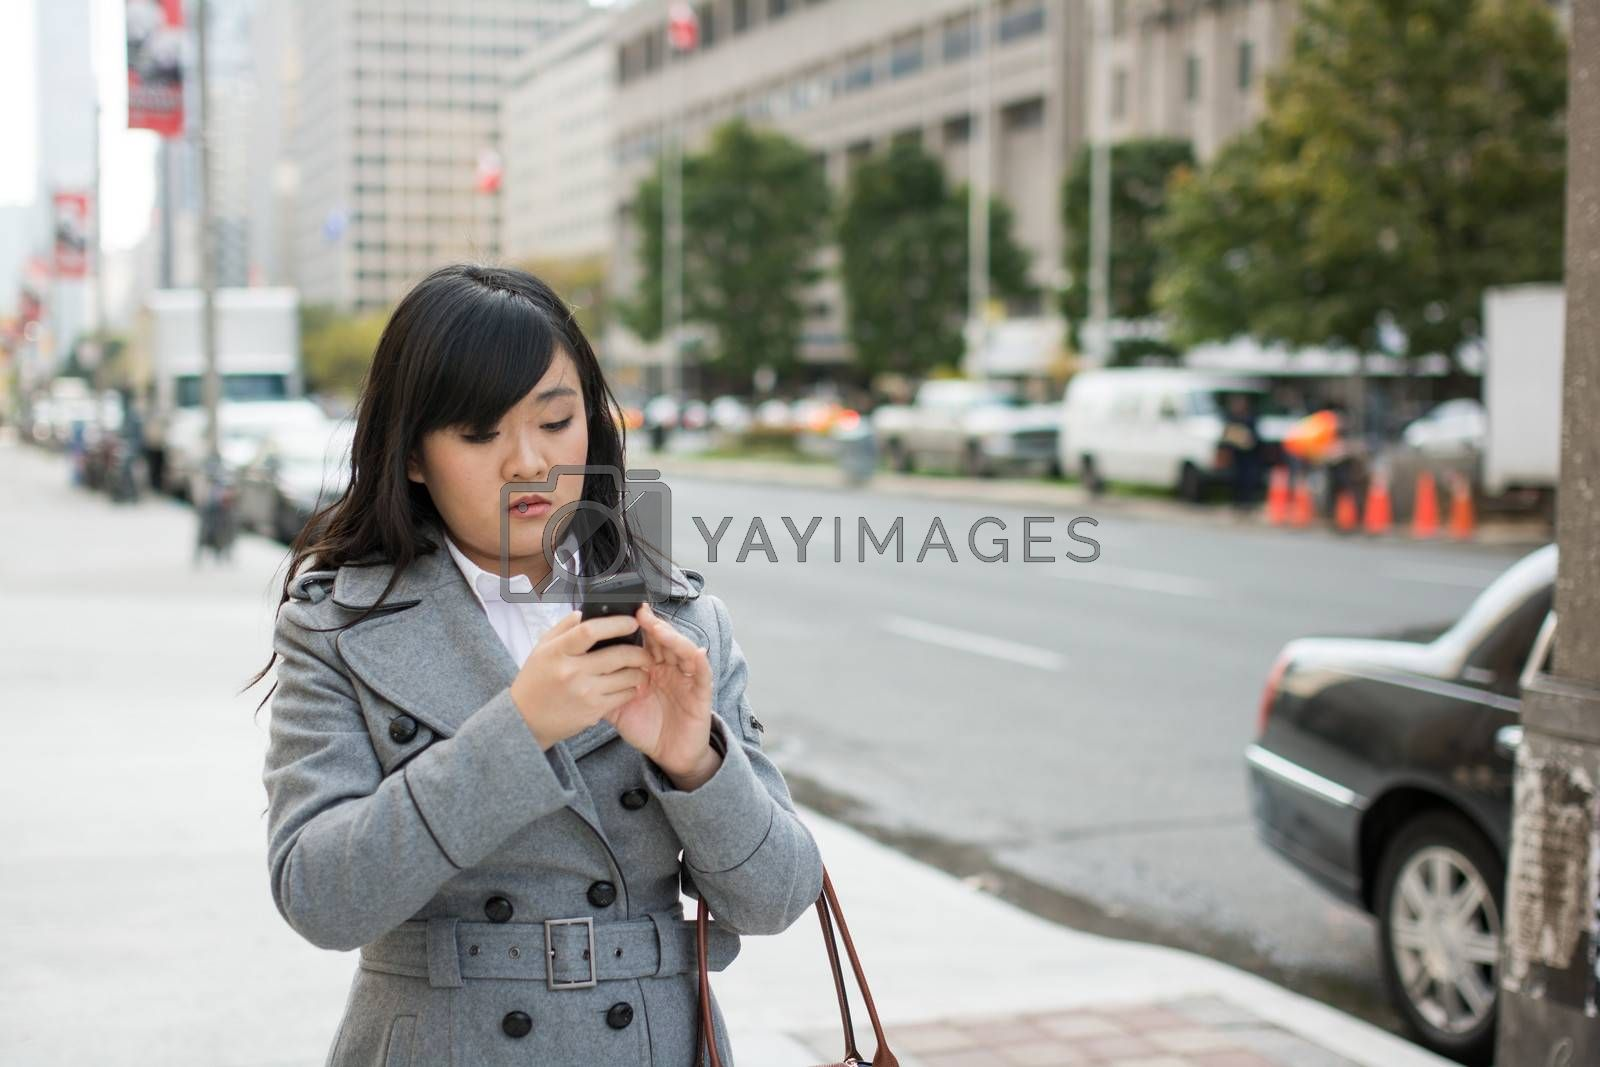 Young Asian woman texting and walking on a street in a large city